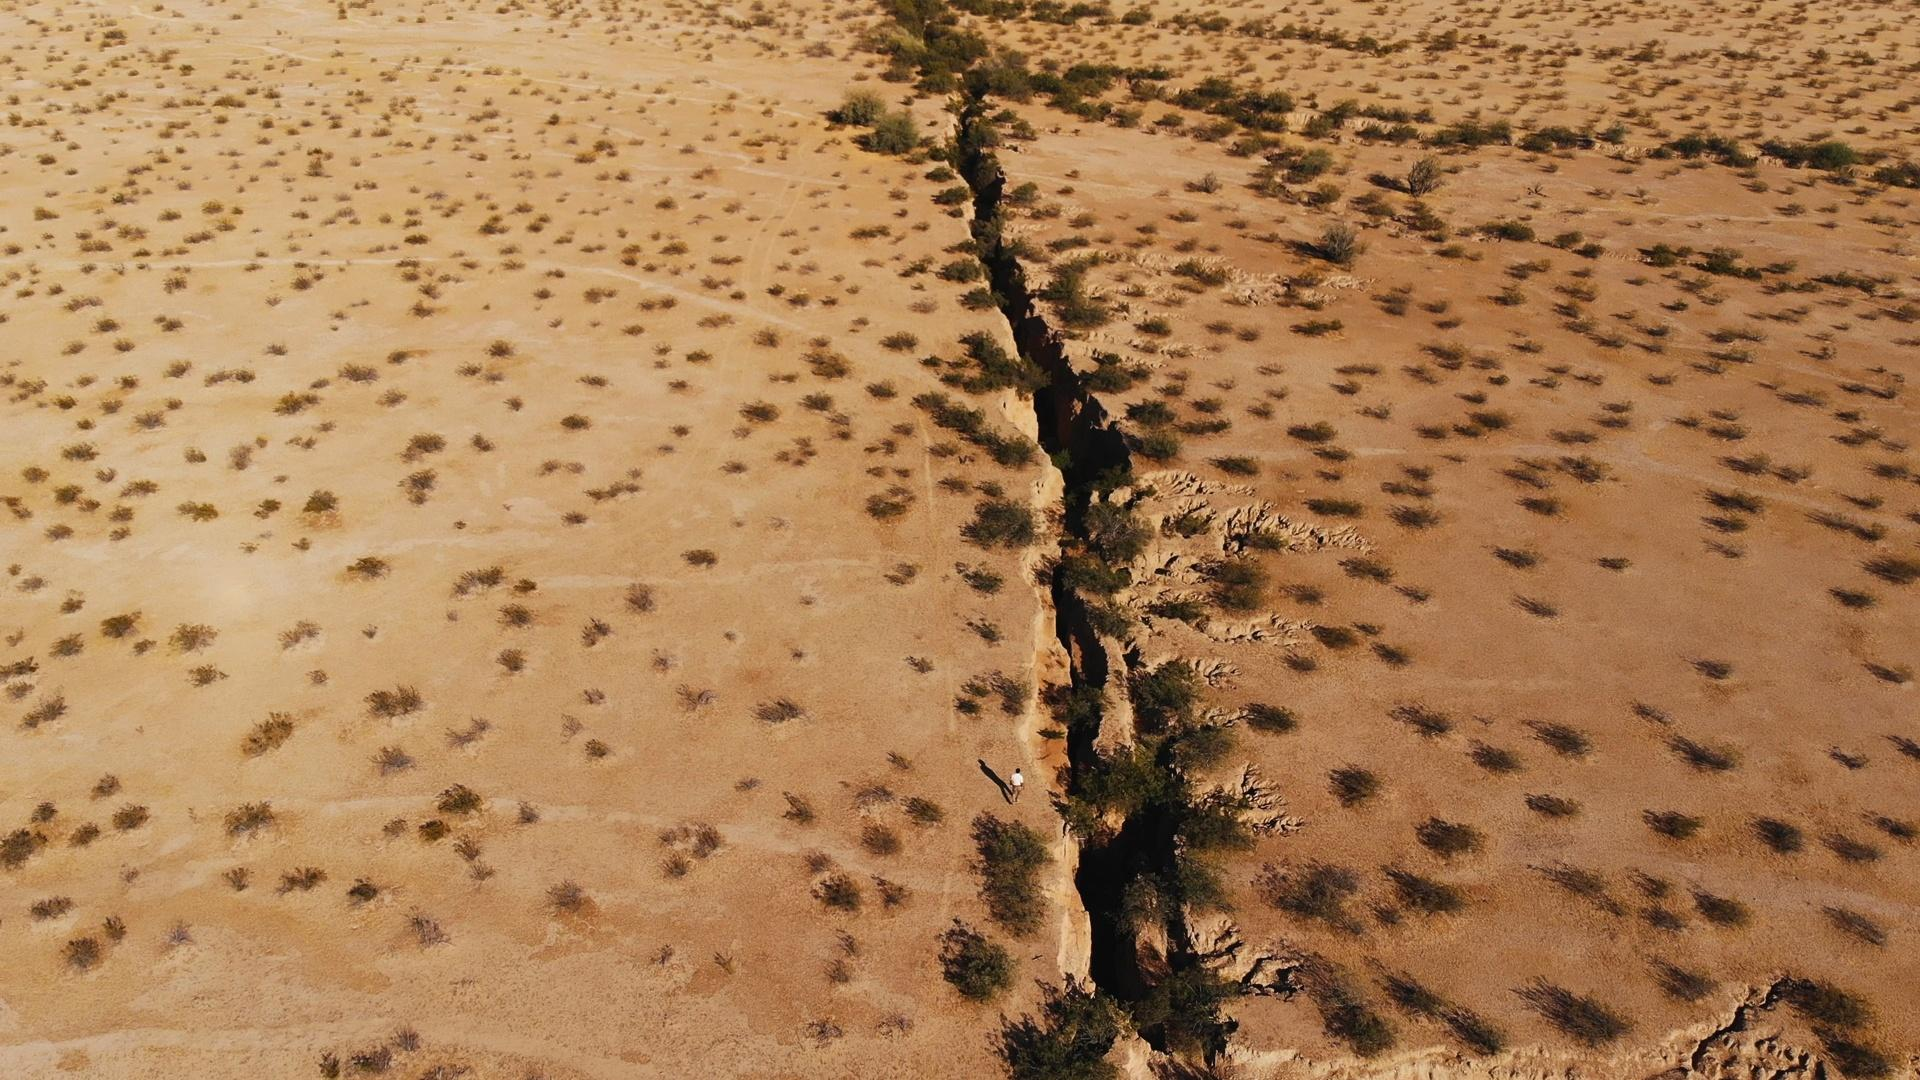 This crack is in Arizona, but it's just one of many cracks appearing on the surface of the earth due to our thirst for groundwater, water that comes from deep under the ground.